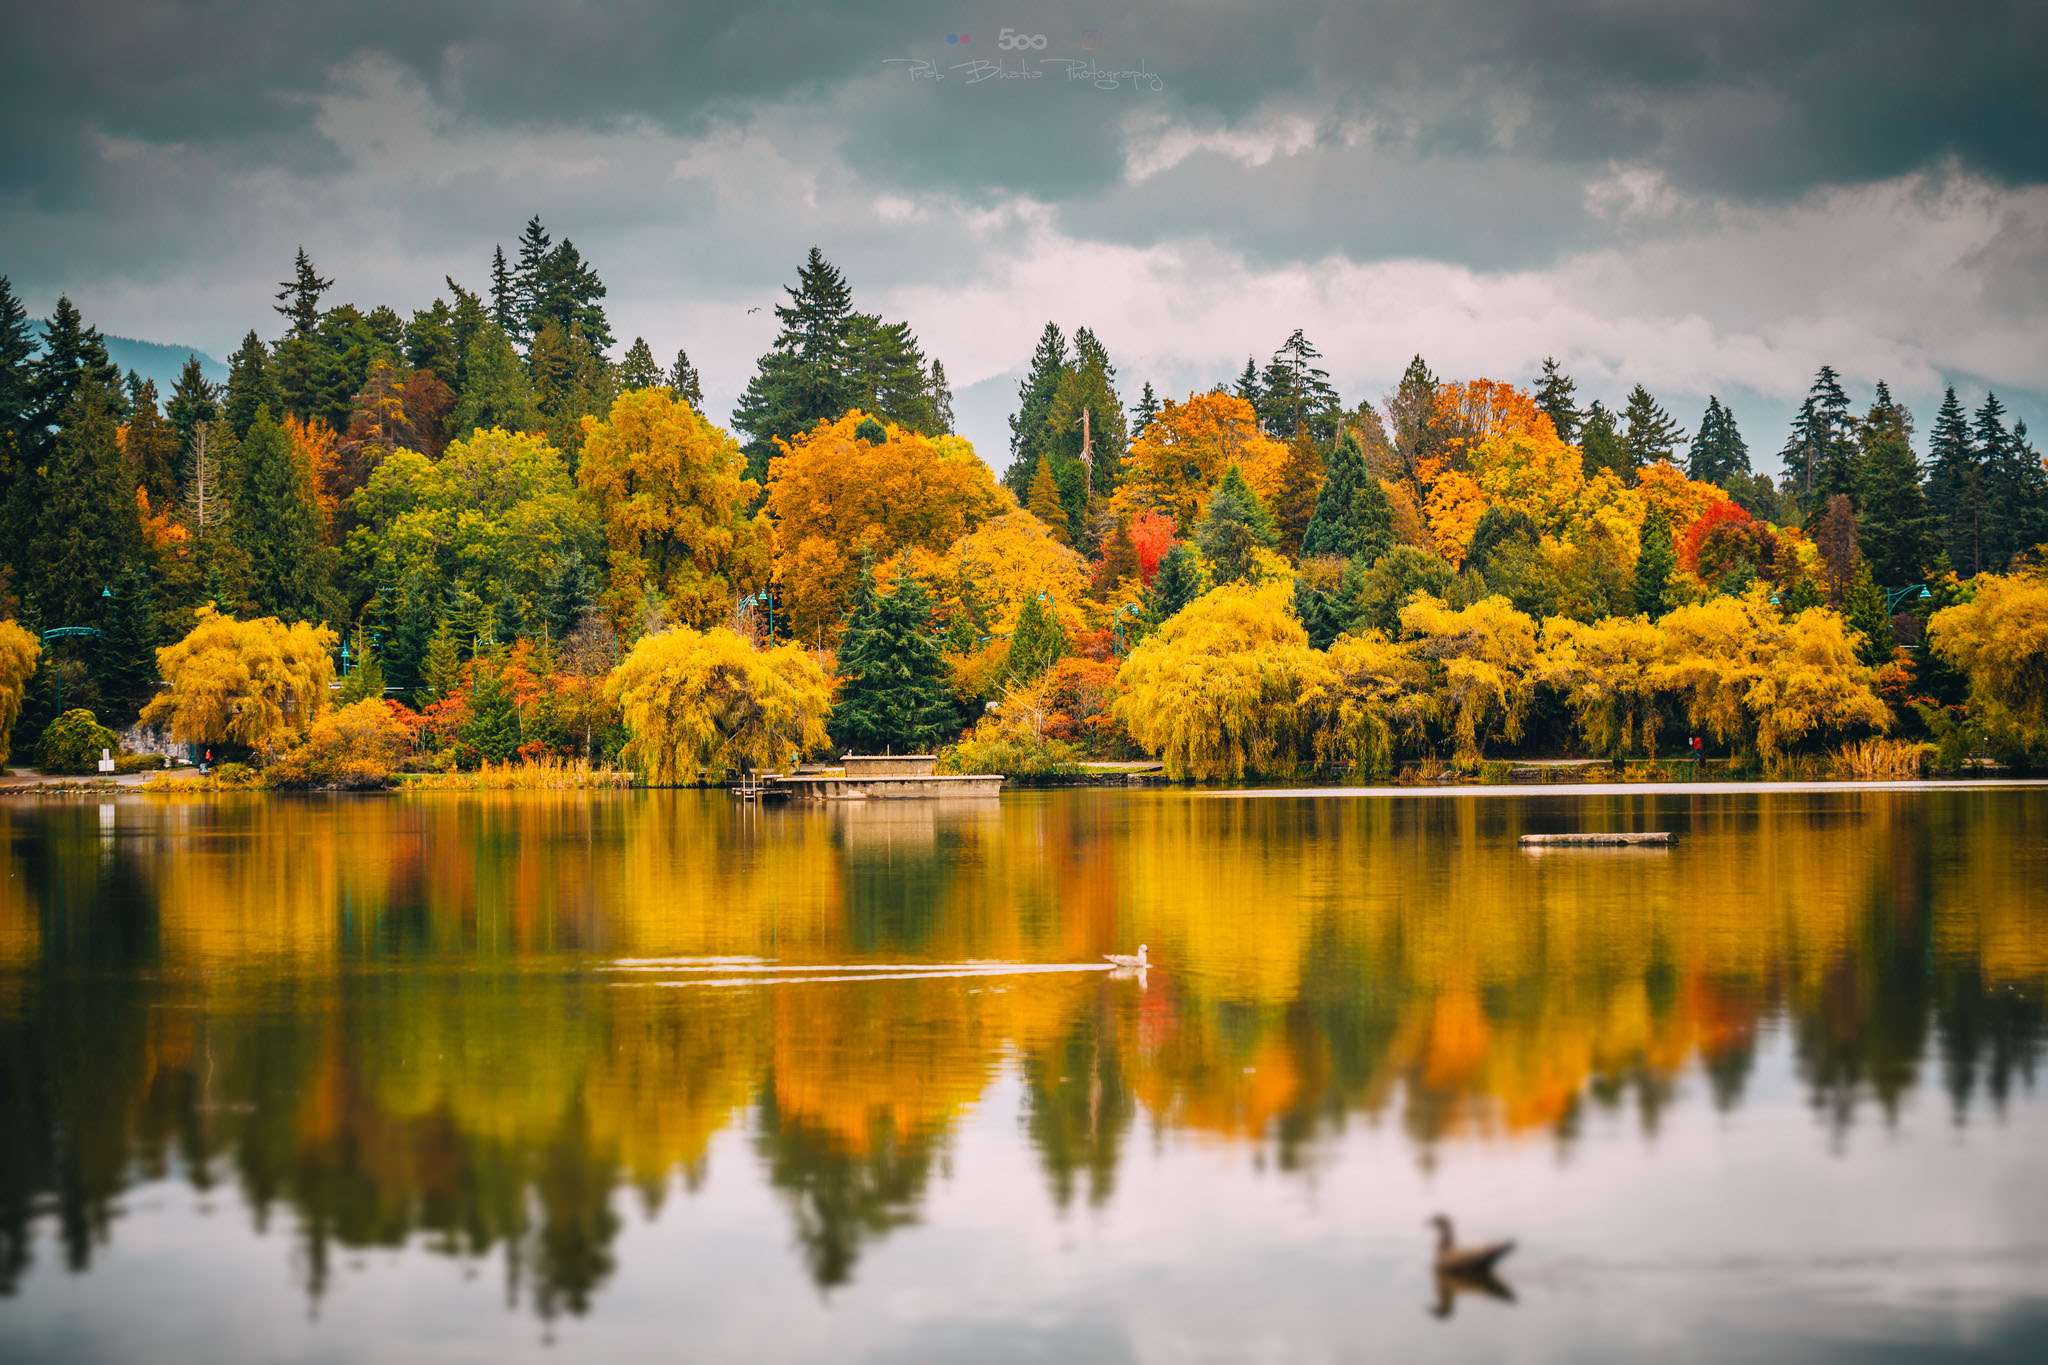 A lake with fall foliage. The autumn leaves are reflected in the lake.